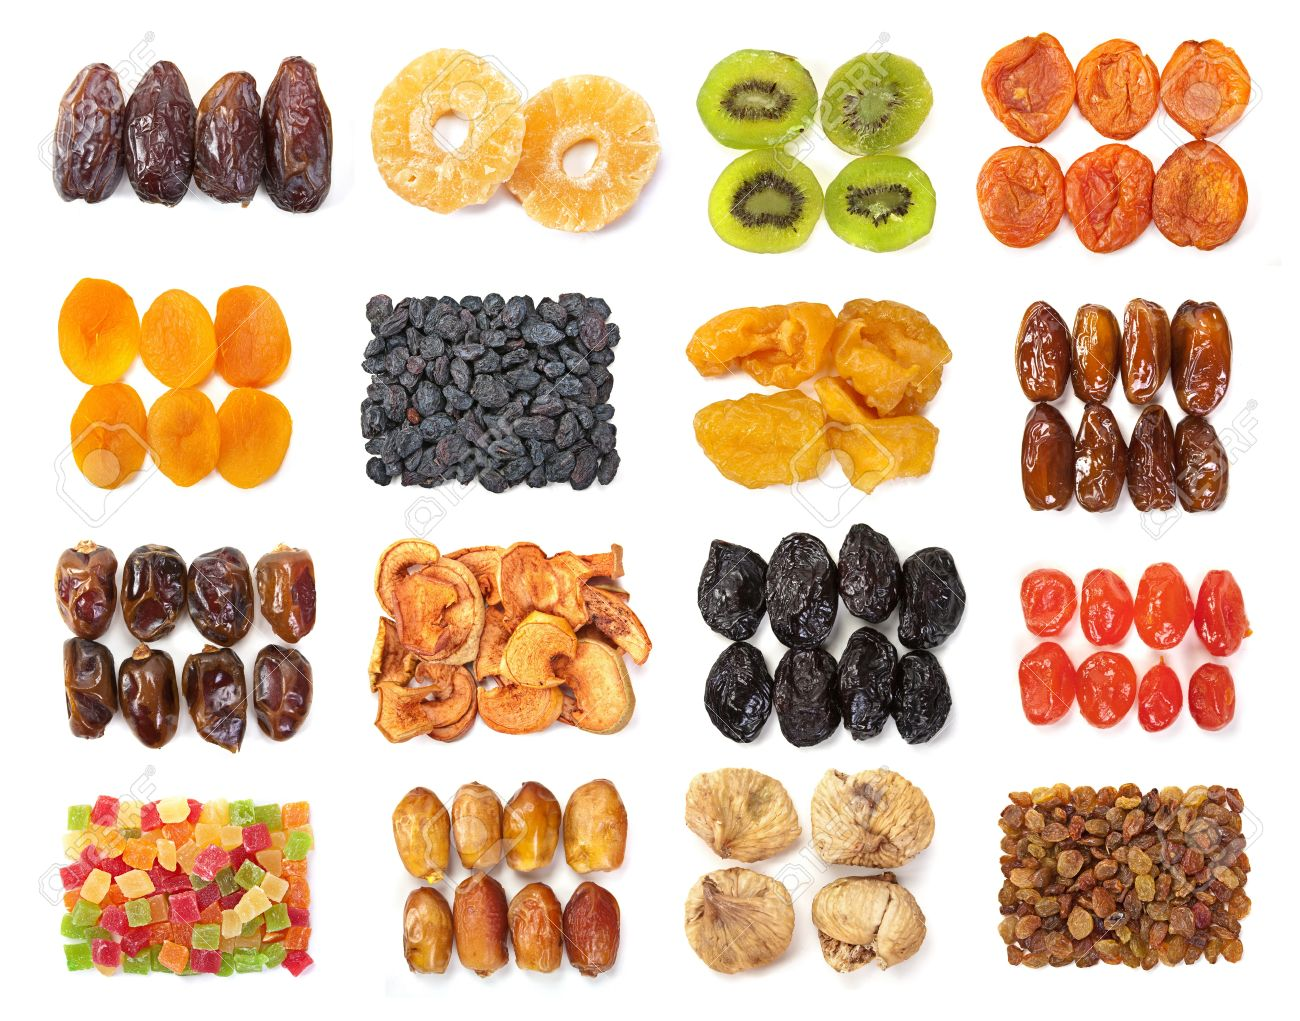 Dry fruit mix set isolated on white background Stock Photo - 8650782